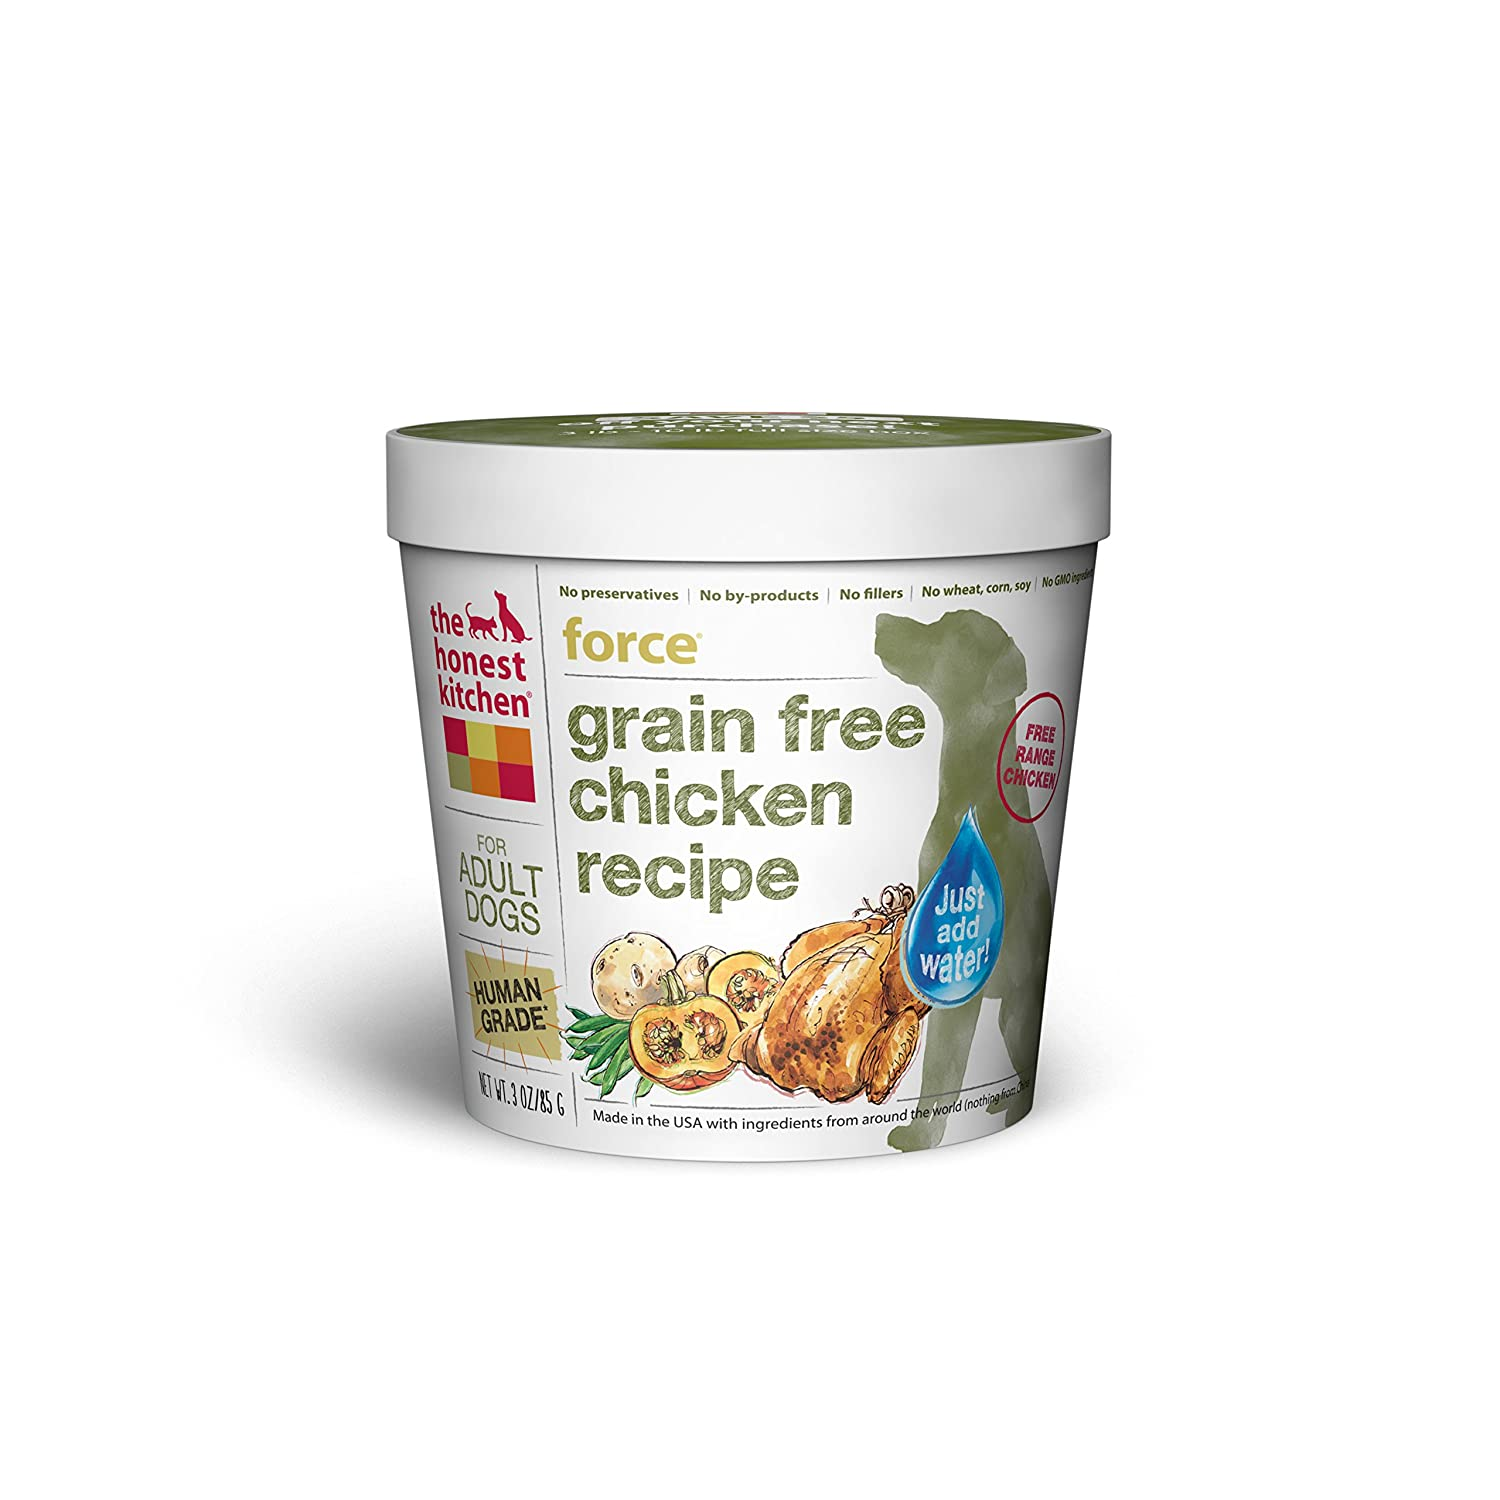 Amazon.com : The Honest Kitchen Grain Free Chicken Dog Food Recipe ...